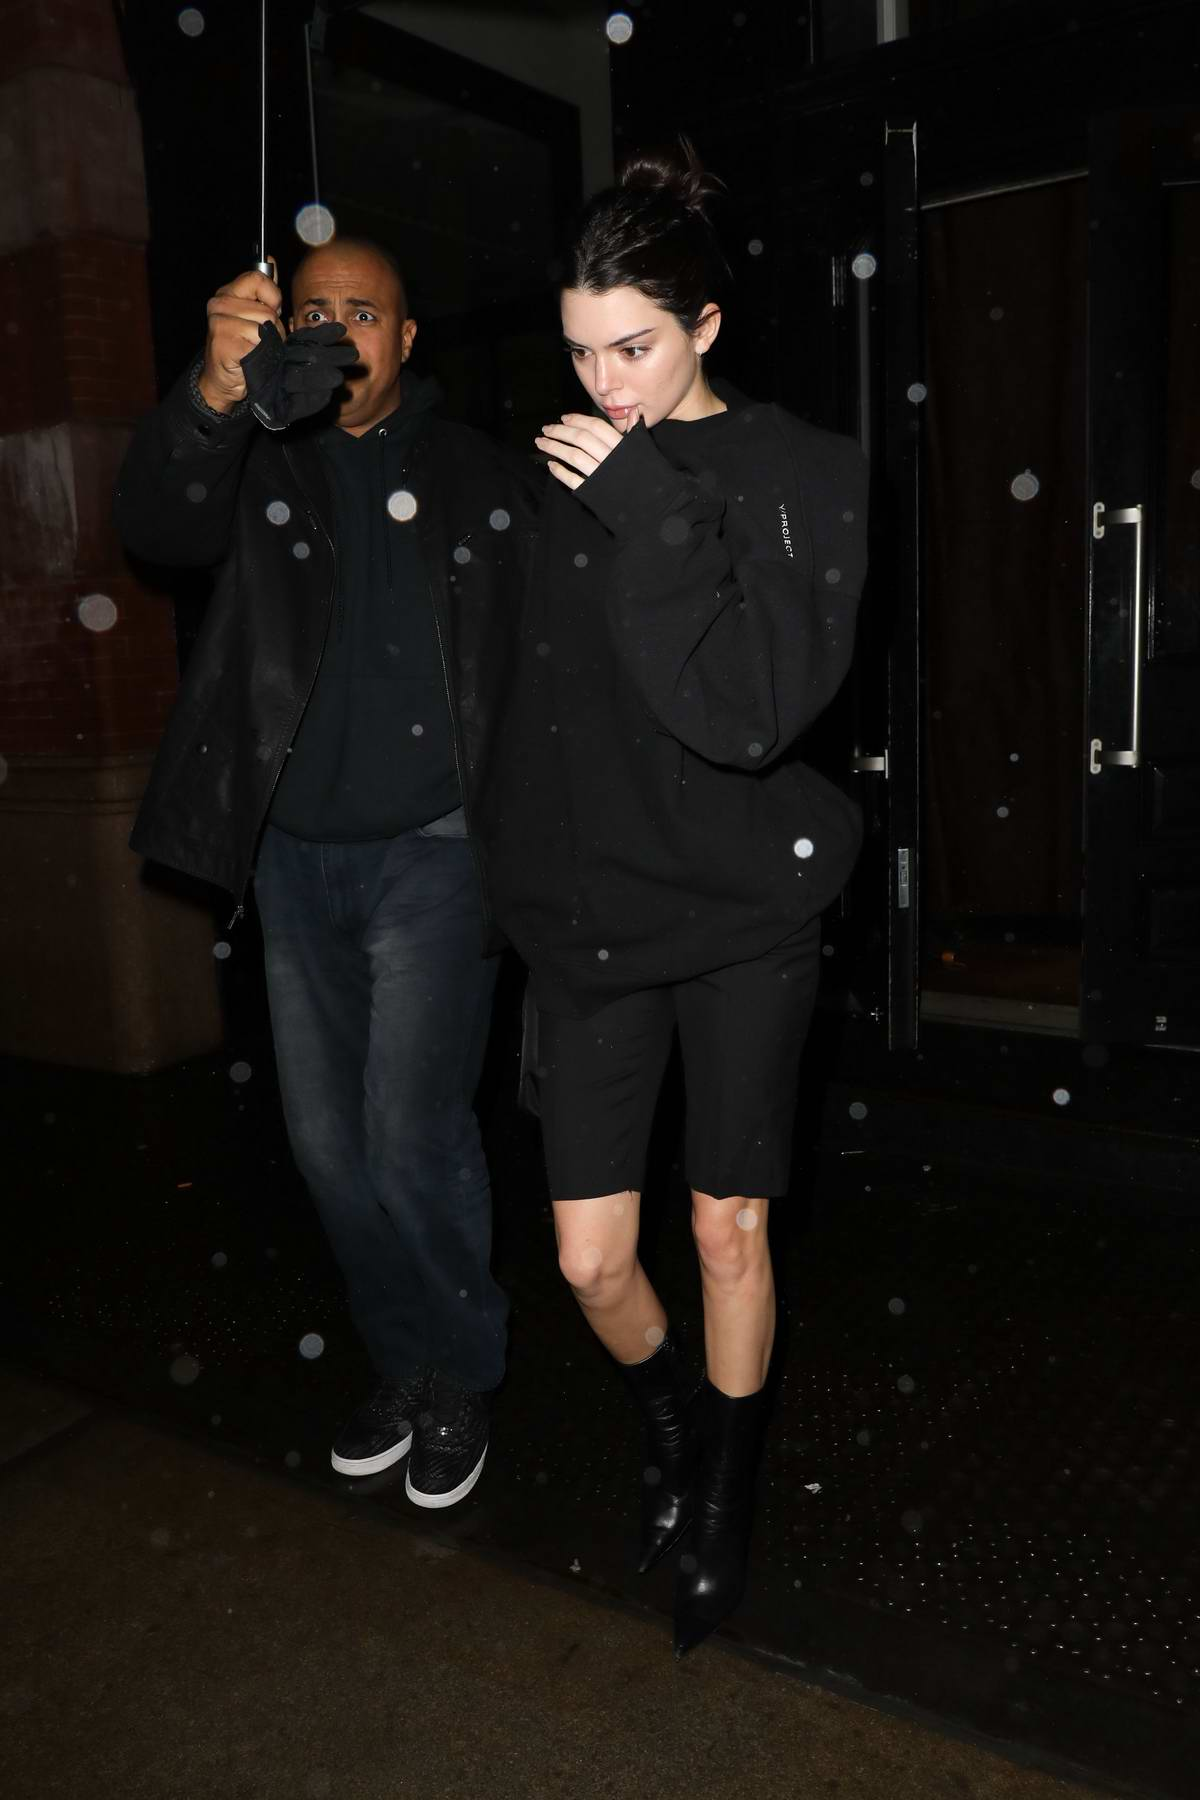 Kendall Jenner leaving Mercer Hotel as she heads to Alexander Wang Show during New York Fashion Week in New York City